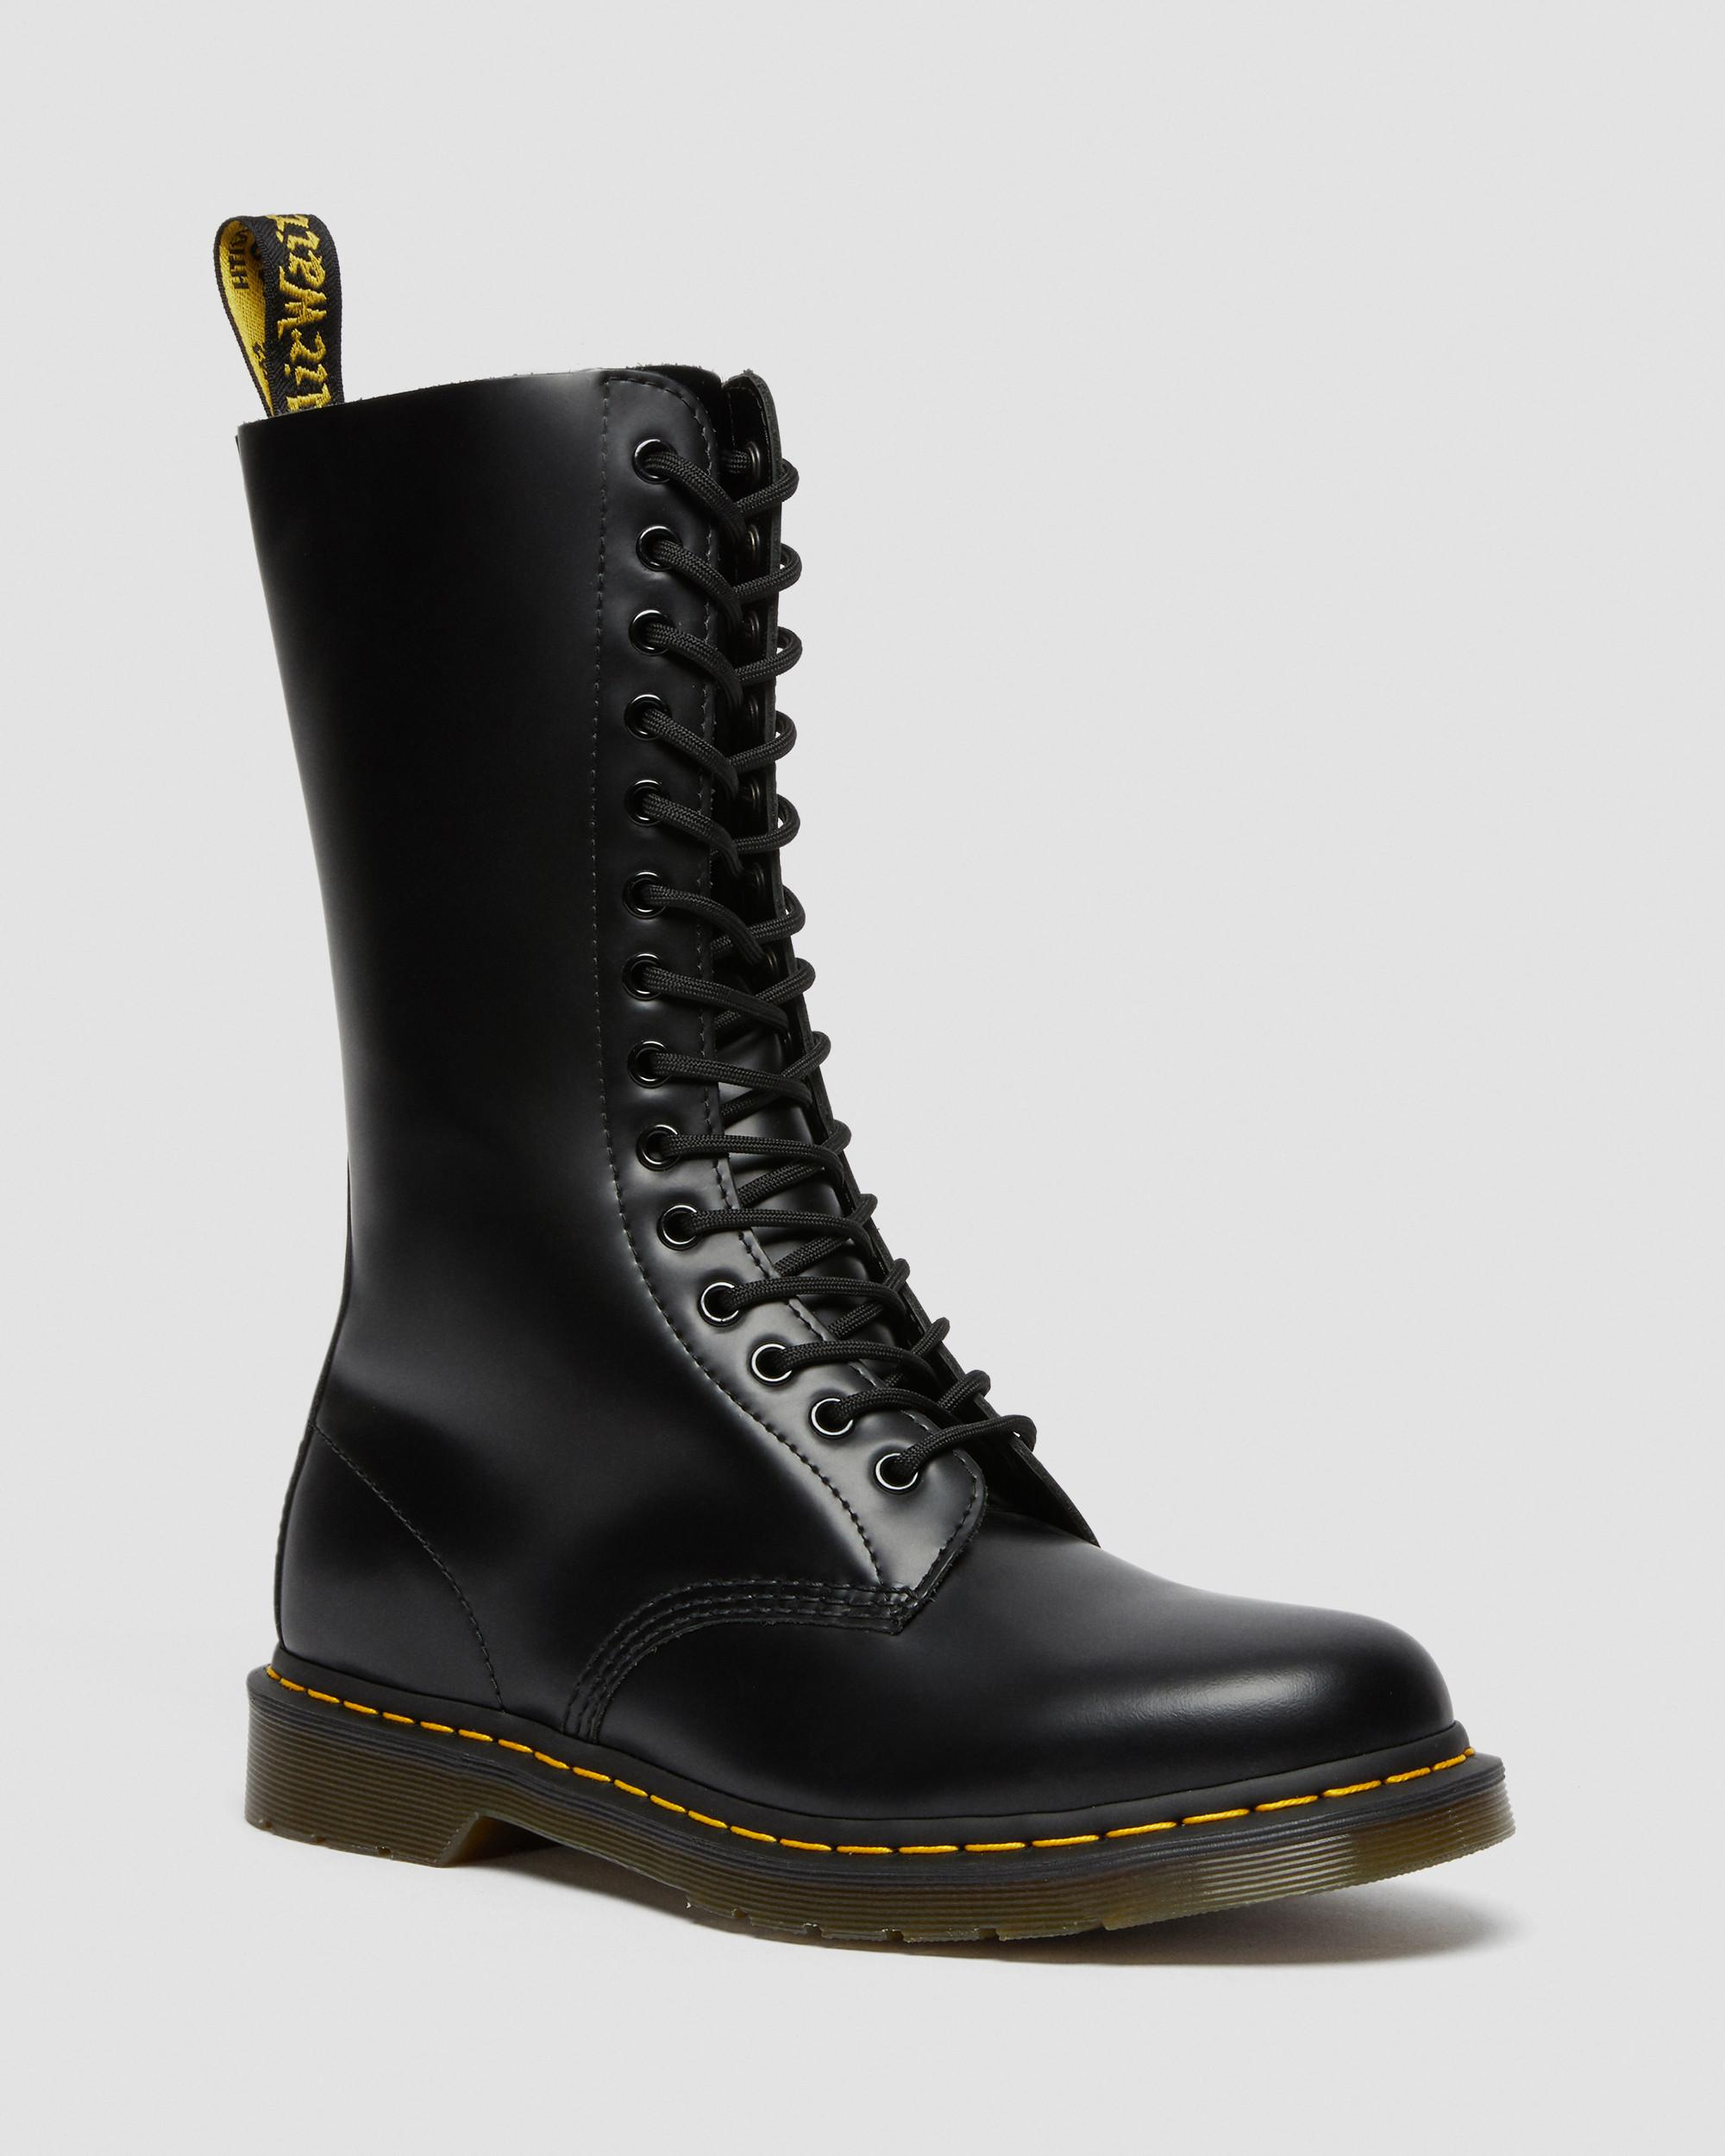 Details about Dr.Martens Ladies Aimilita High Boots Biker Boots Padded Black